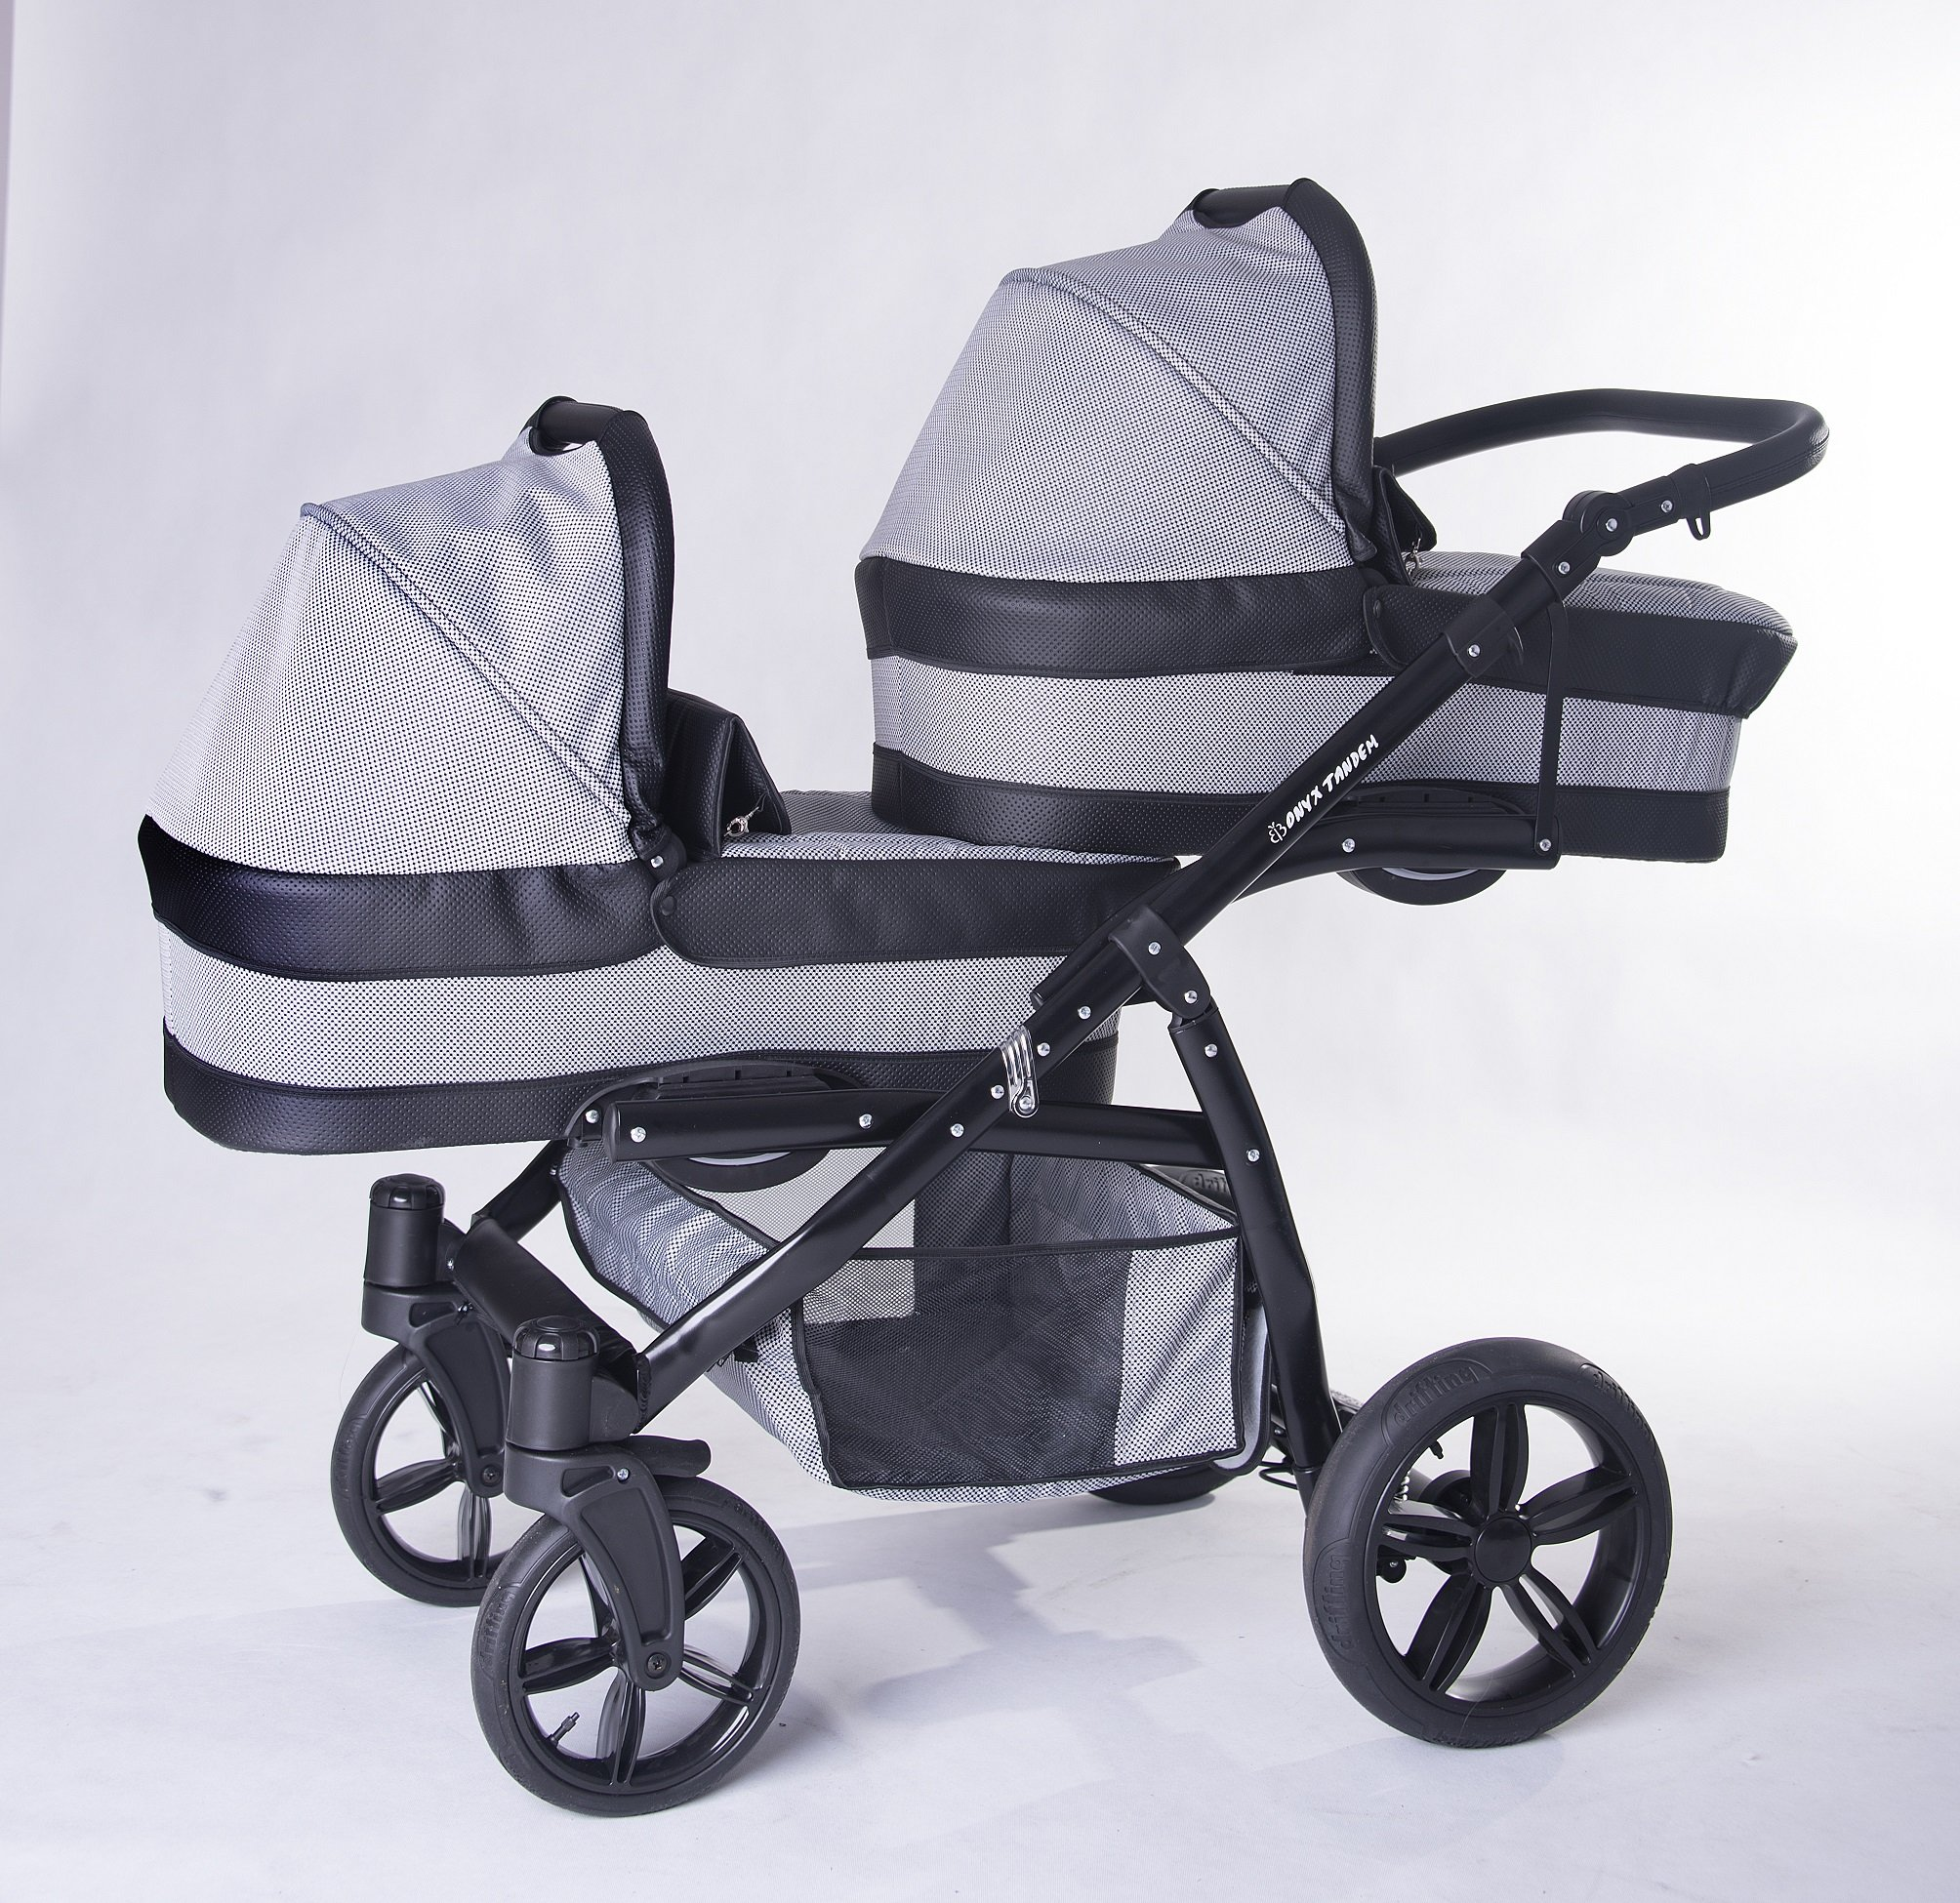 Twins pram 3in1: 2 carrycots + 2 buggies + 2 car seats + 2 ISOFIX + accesories. Grey + black ecoleather. BBtwin double pram Berber Carlo Directly from factory, guarantee color: grey + Mint, Made in the European Union, according to the standards PN-EN 1888 Includes: 2Maxi-Cosi + 2chairs + 2Car Seats group 0+ isofix 2bases + Bag + 2Plastics, rain + 2nets + 2x Baby safety + 2Bars for the chairs. Dimensions: Length with two Maxi-Cosi: 134cm Width of the car chassis: 62cm folded: 89X 62X 30cm wheeled chassis with chairs/Maxi-Cosi Weight: 17kg, Weight: 9kg, handlebar height: 75cm to 105cm, tote bag inside: 79X 33cm, Chair: 93X 37cm 1